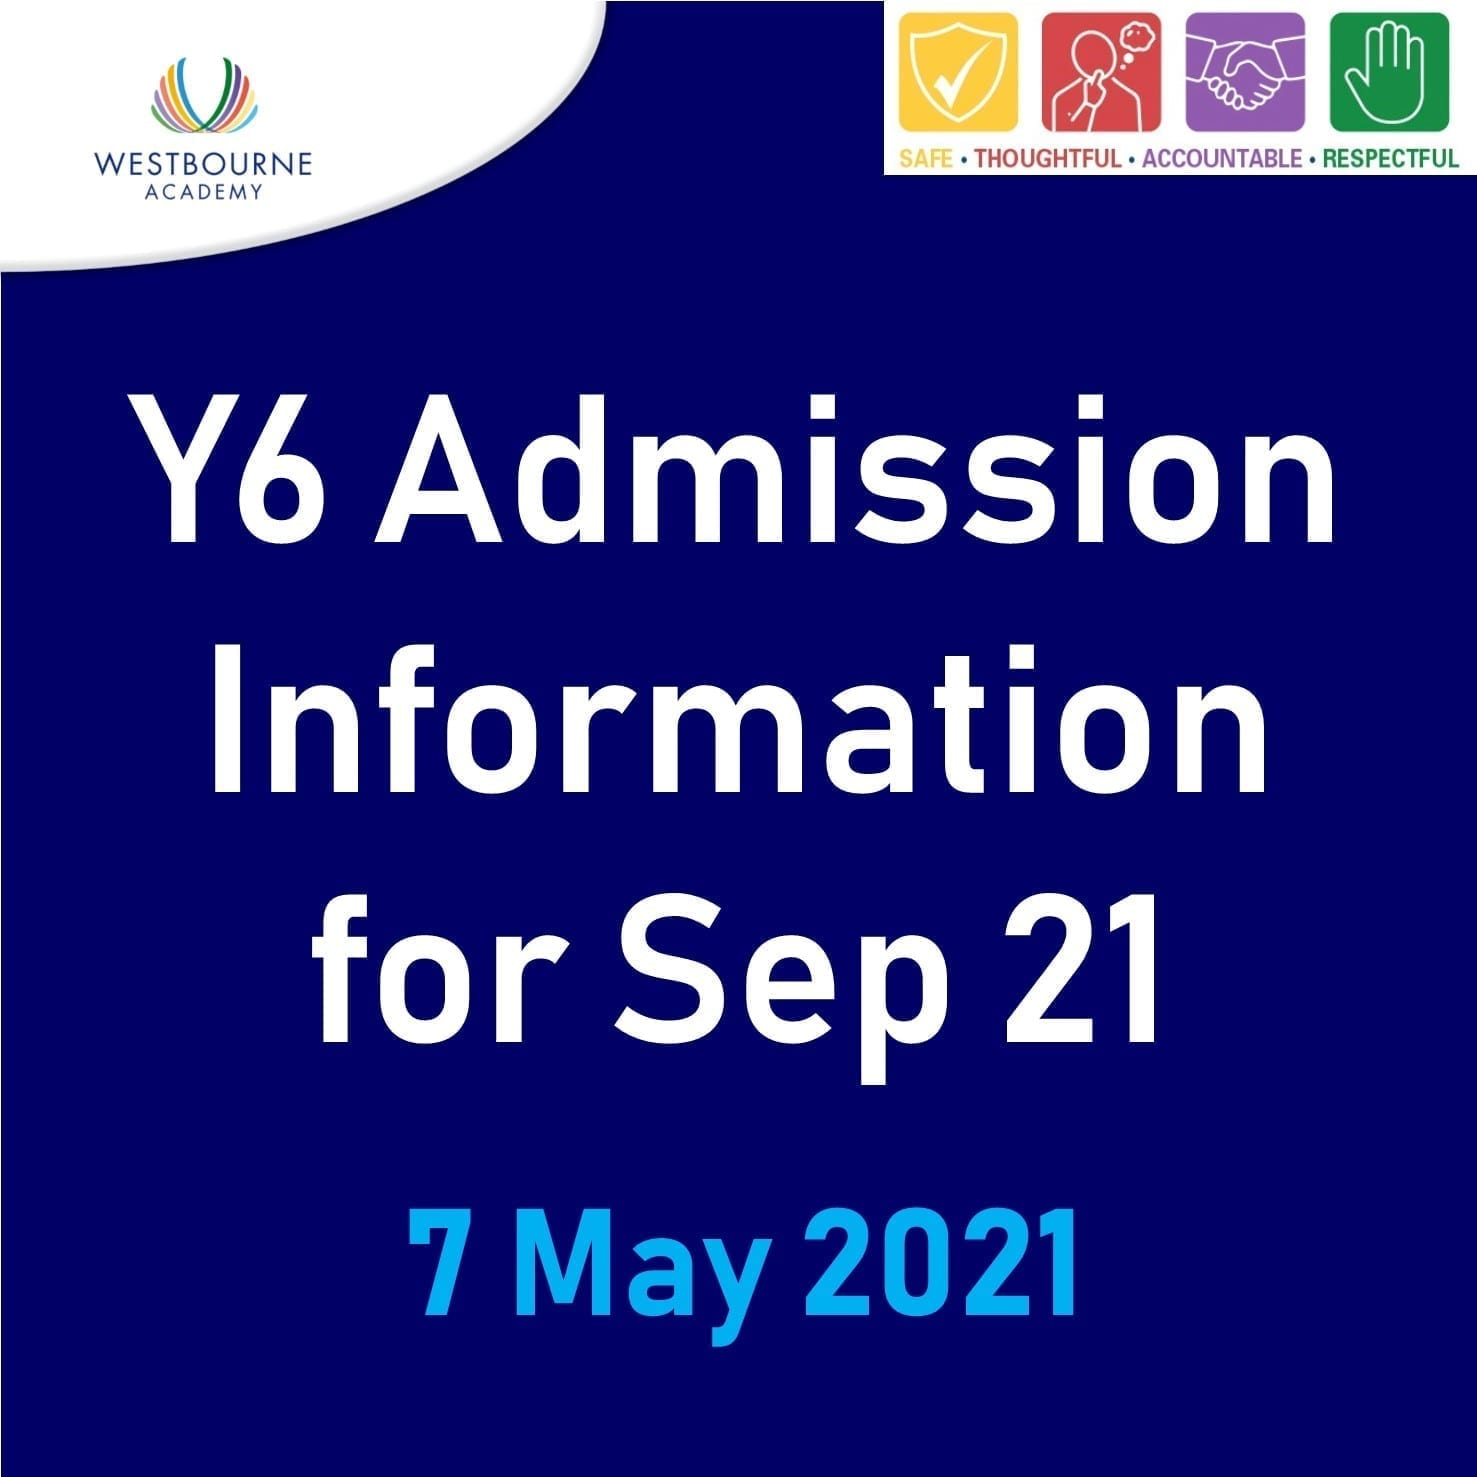 Y6 admission information for Sep 21